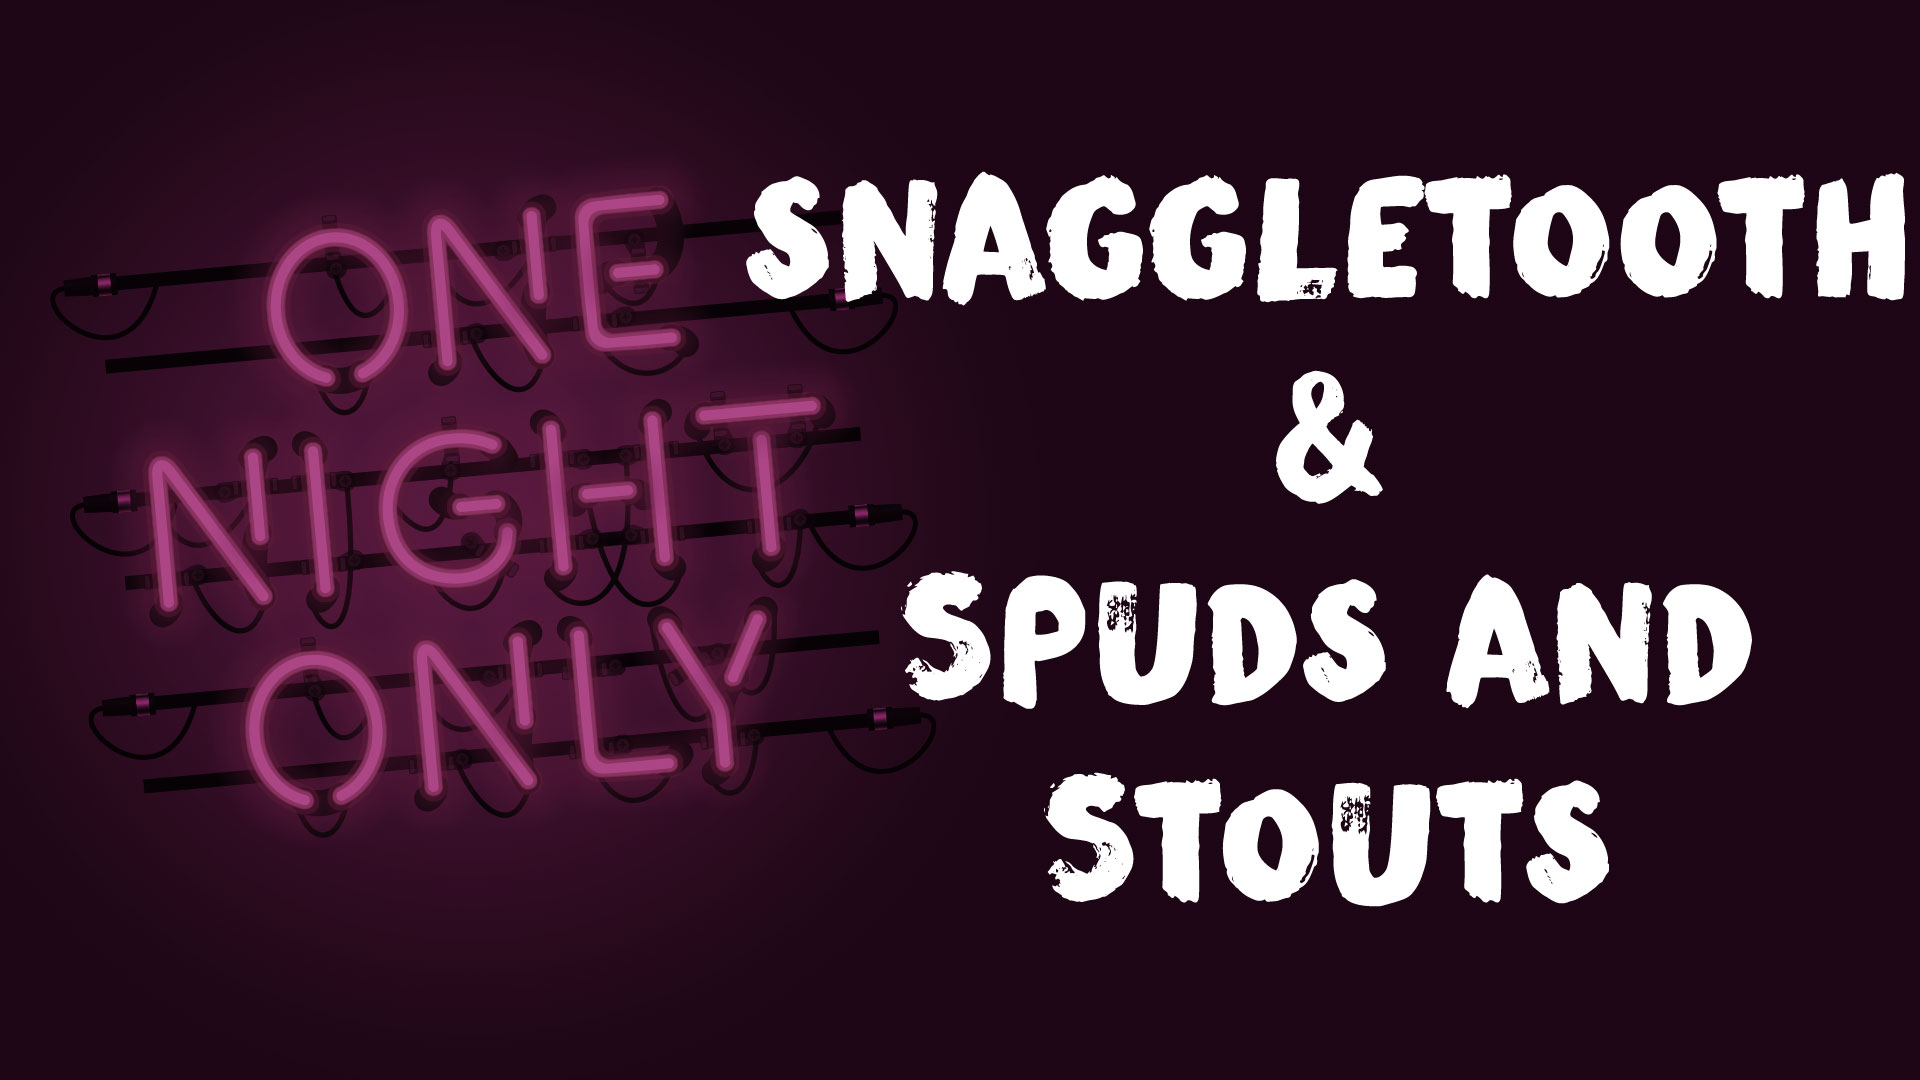 One Night Only: Snaggletooth & Spuds and Stouts